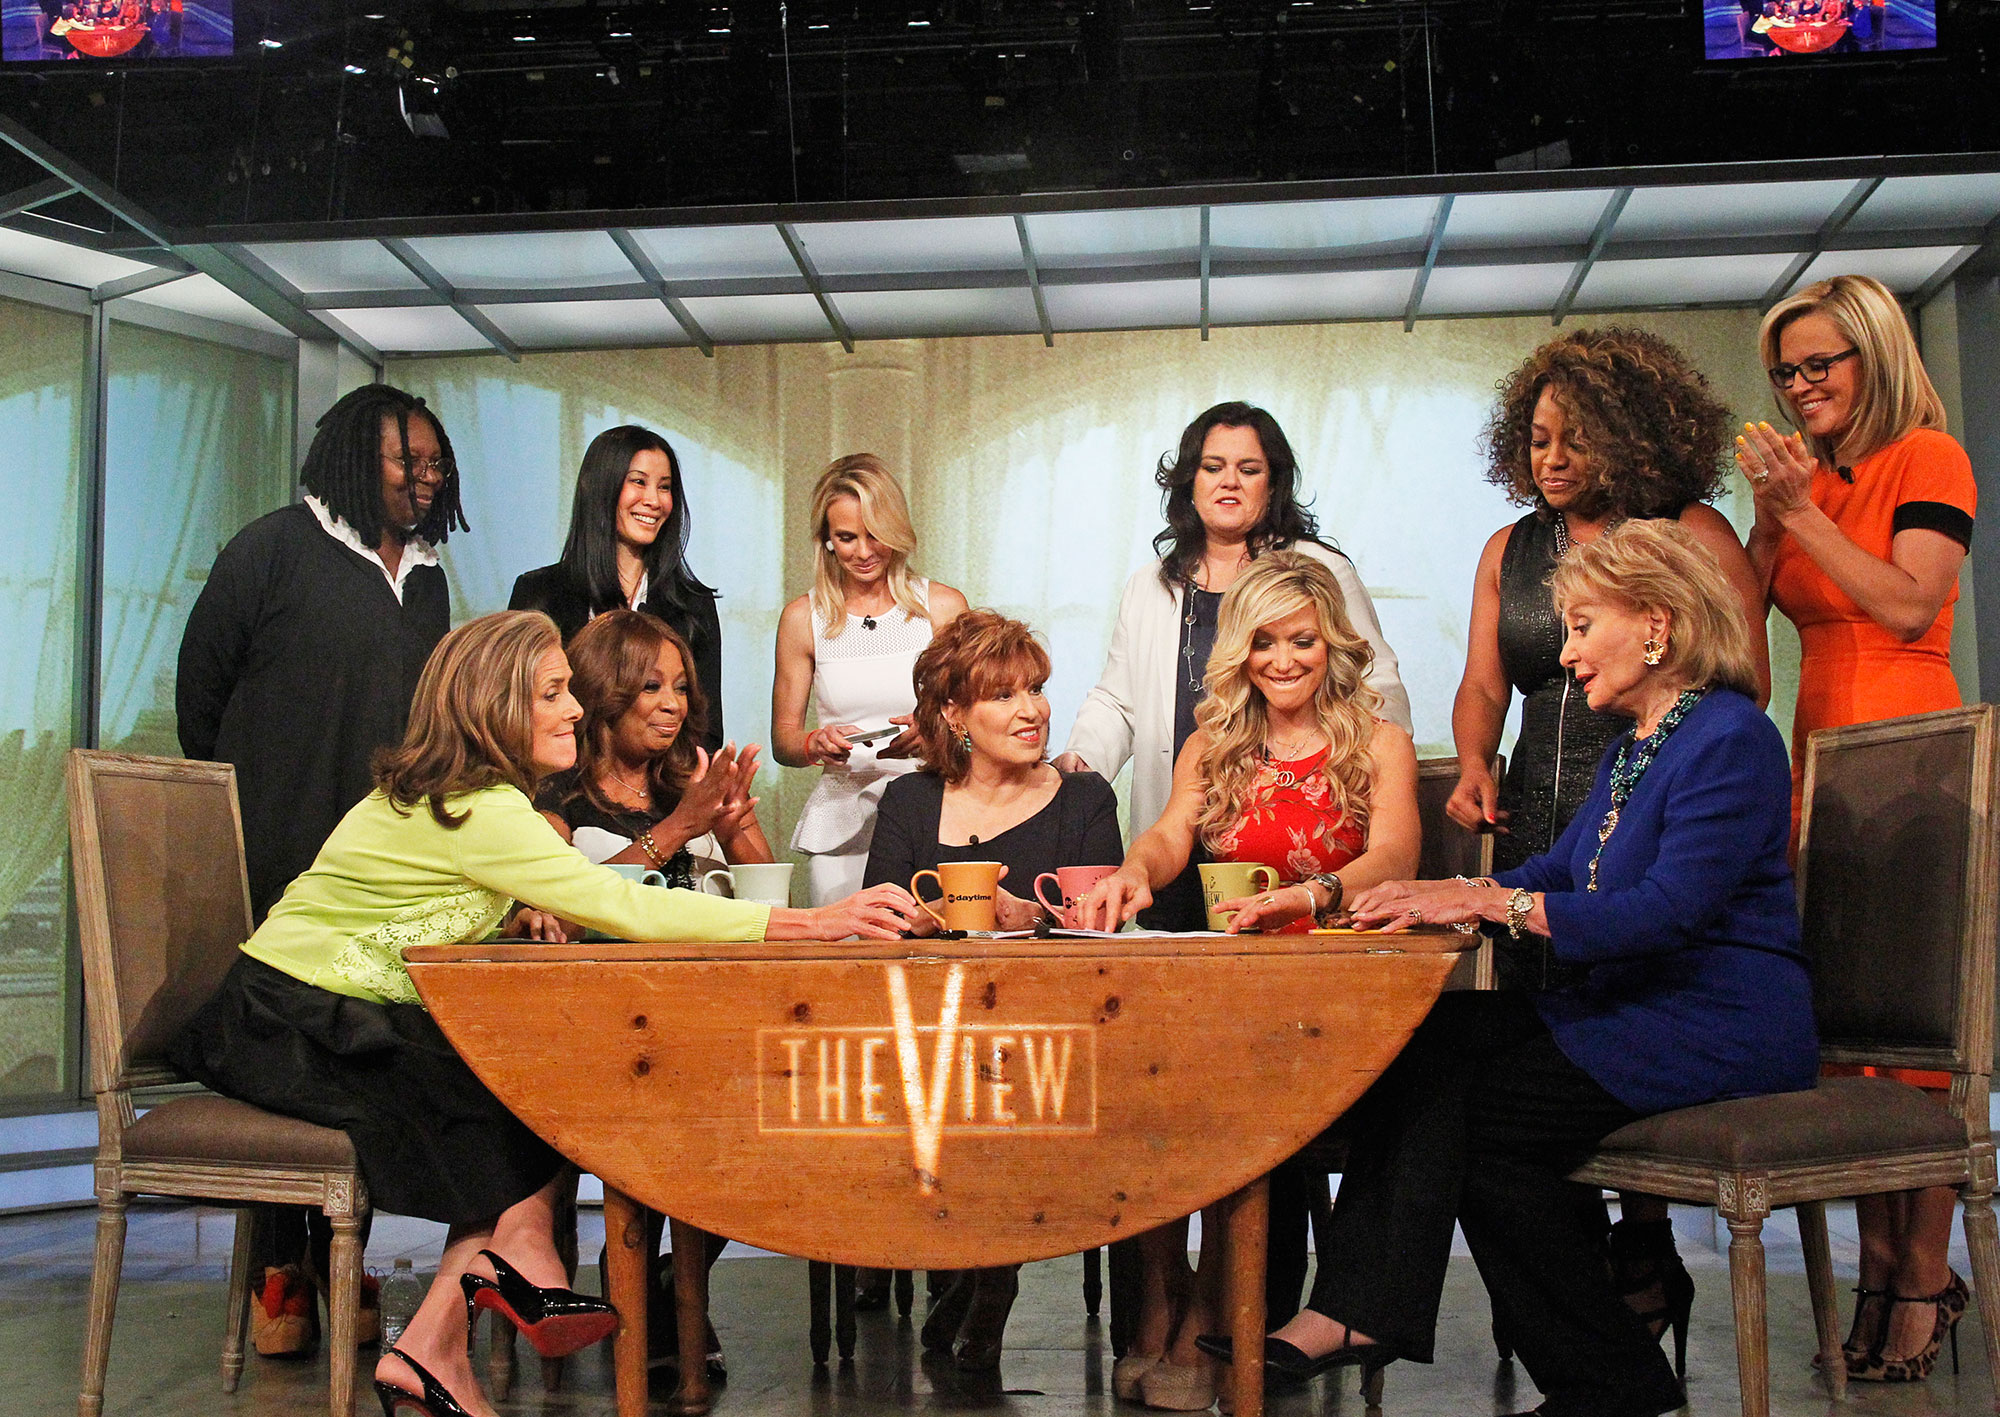 Barbara Walters Rosie O'Donnell She's 'Too Old'! Feuds, Friendships and More Shocking Revelations from 'The View' Tell-All - Executives told O'Donnell they couldn't meet her $5 million salary requirement so that she'd leave the show after she publicly slammed the program's news division.